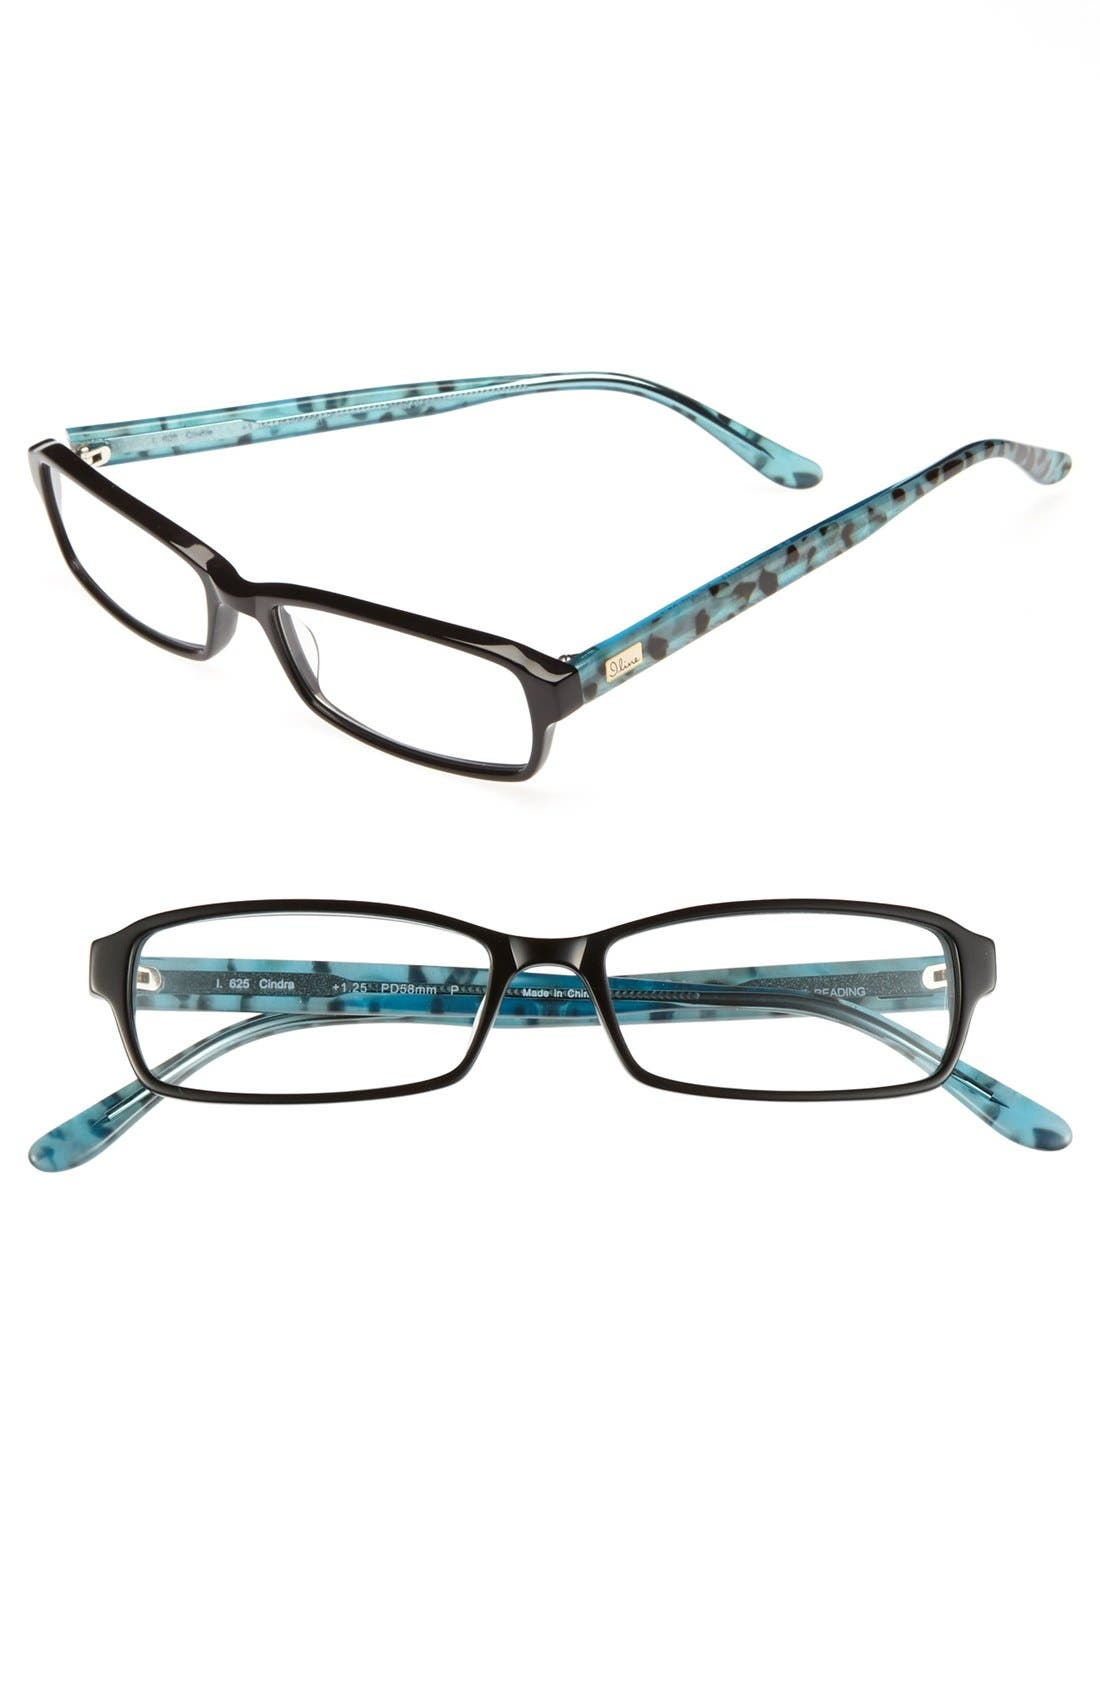 Main Image - I Line Eyewear 'Cindra' 52mm Reading Glasses (2 for $88)